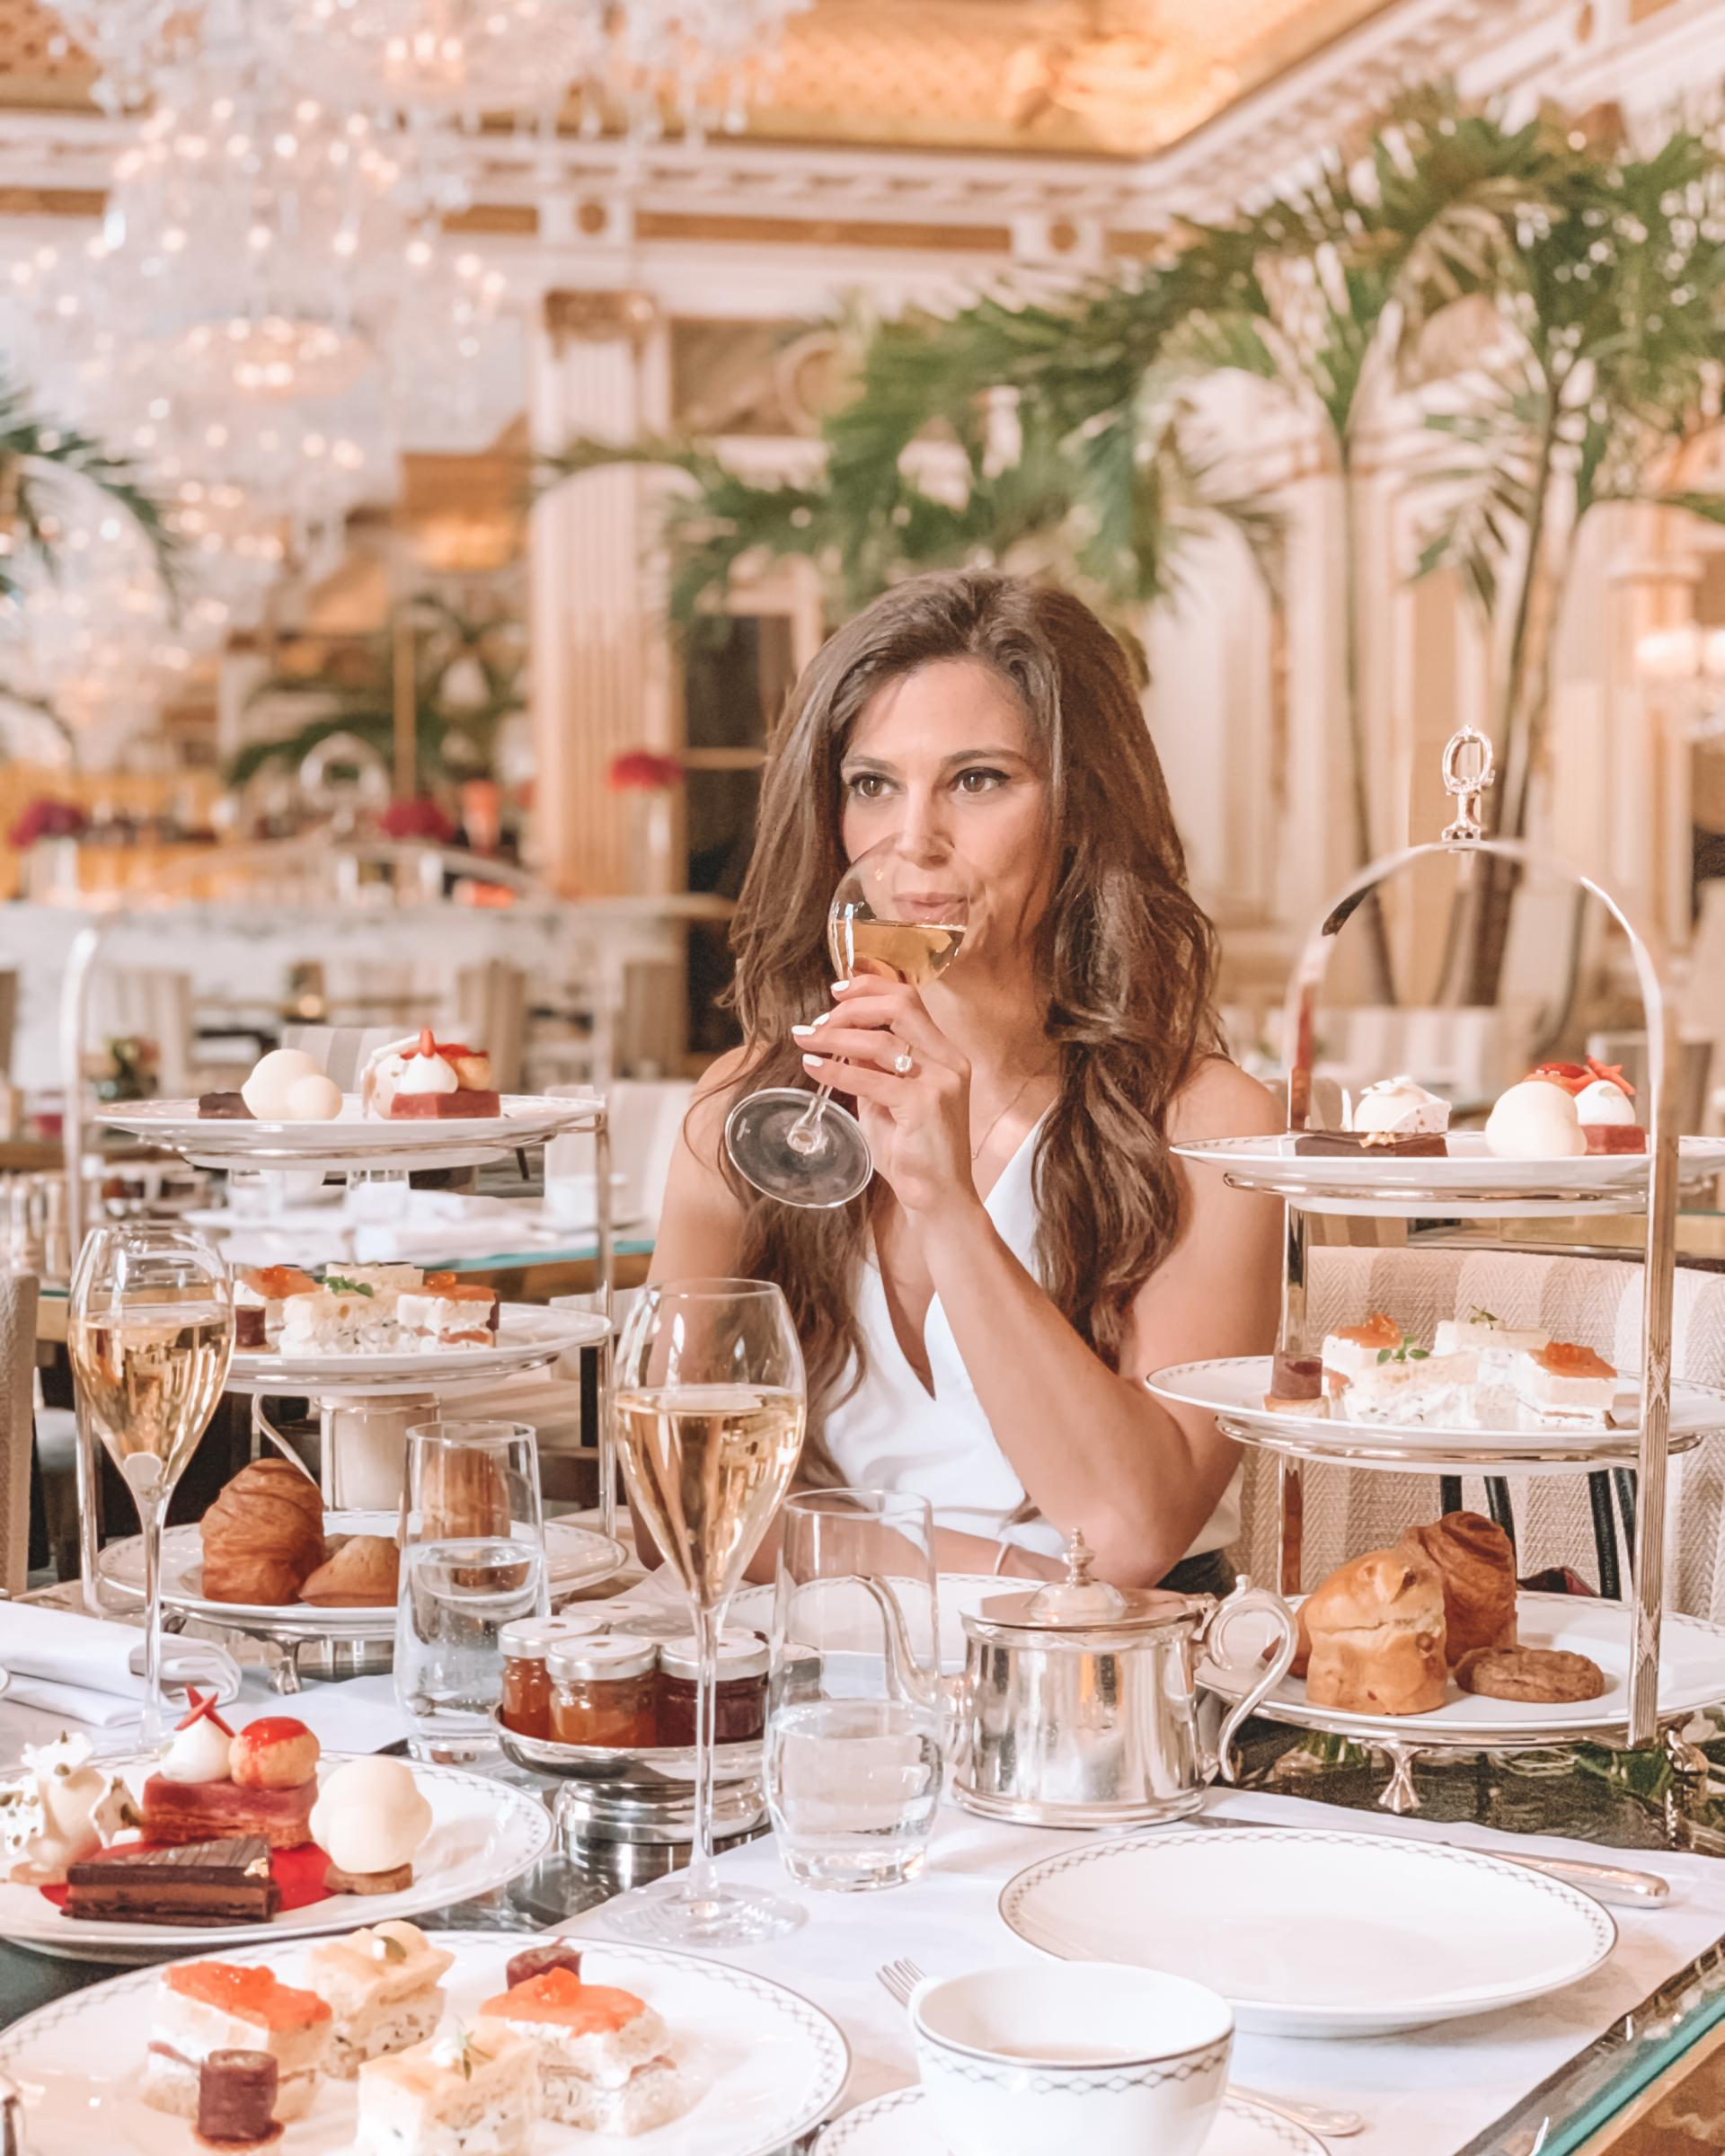 Afternoon tea time at the Peninsula